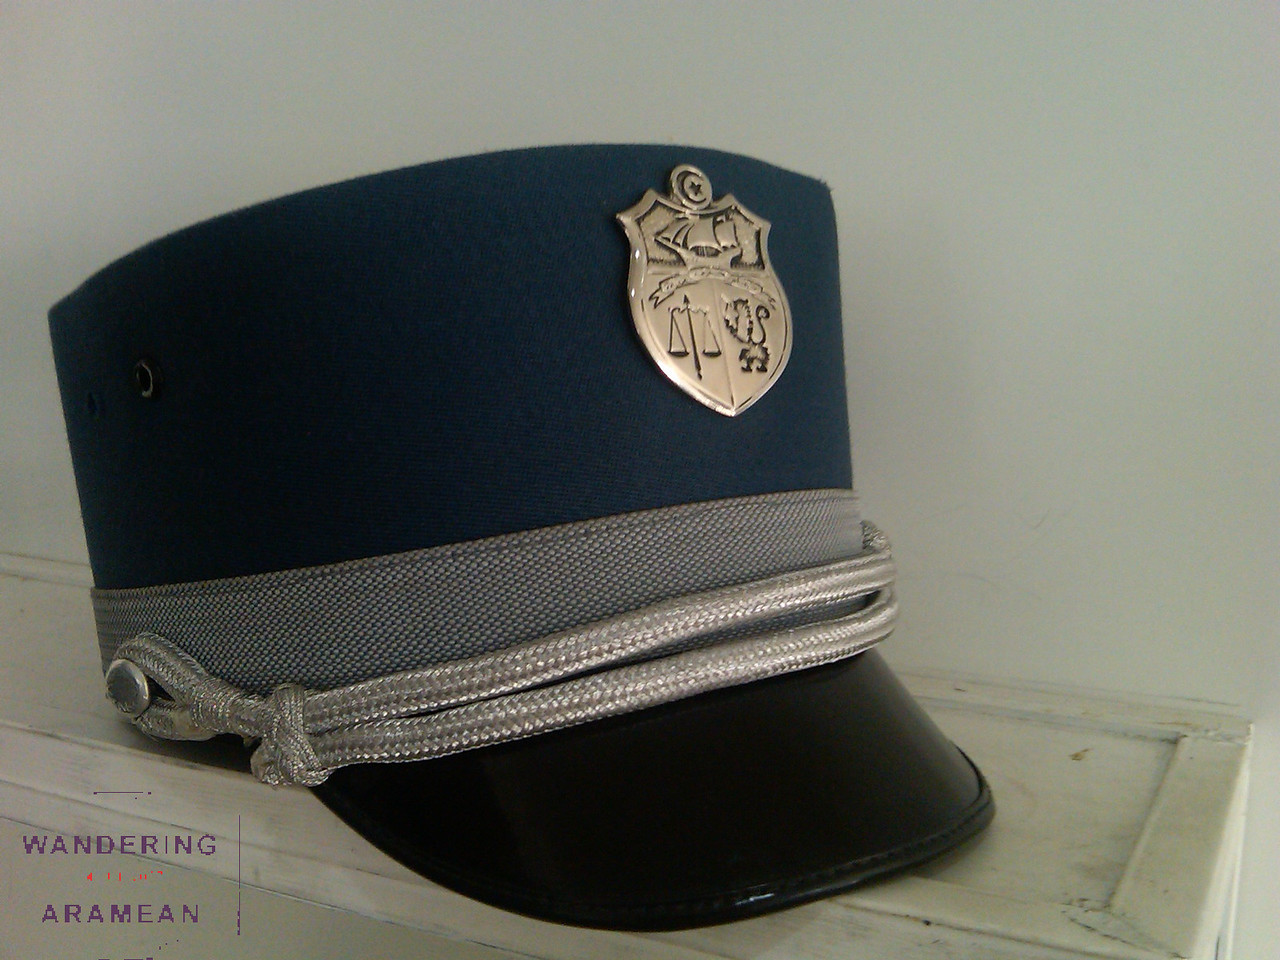 The immigration officers in Tunisia had awesome hats